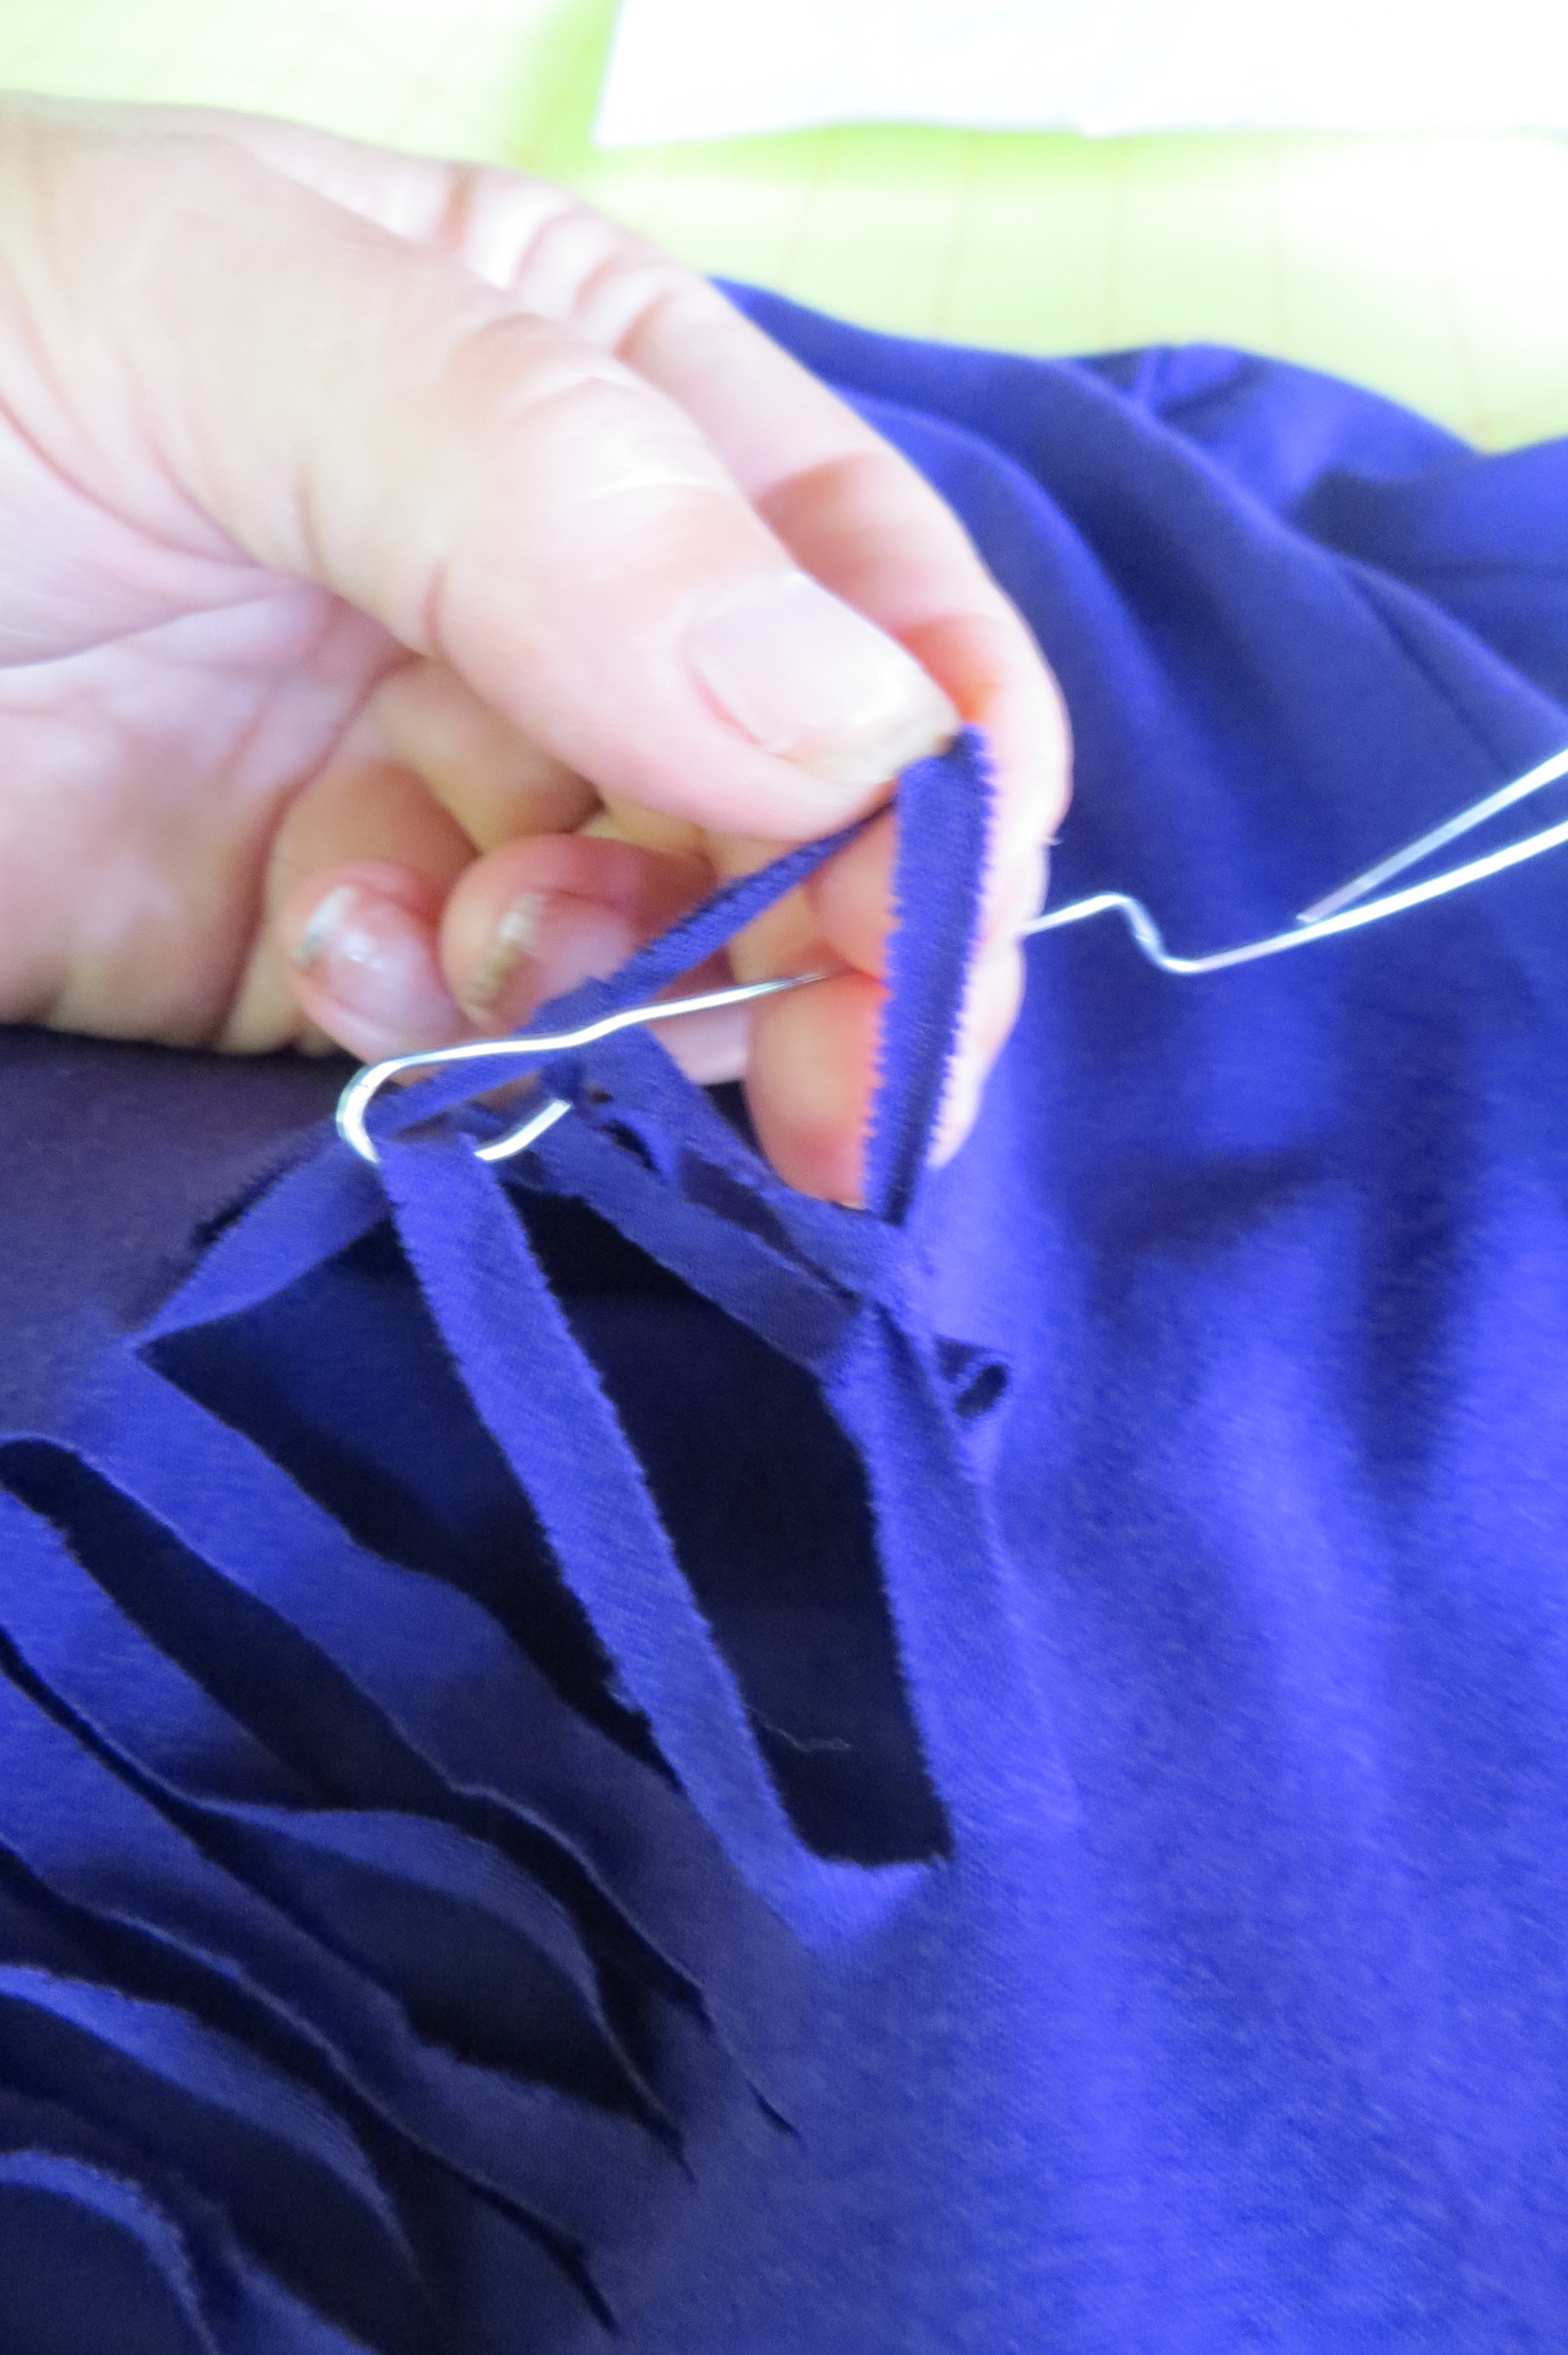 and pull the fished thread through.